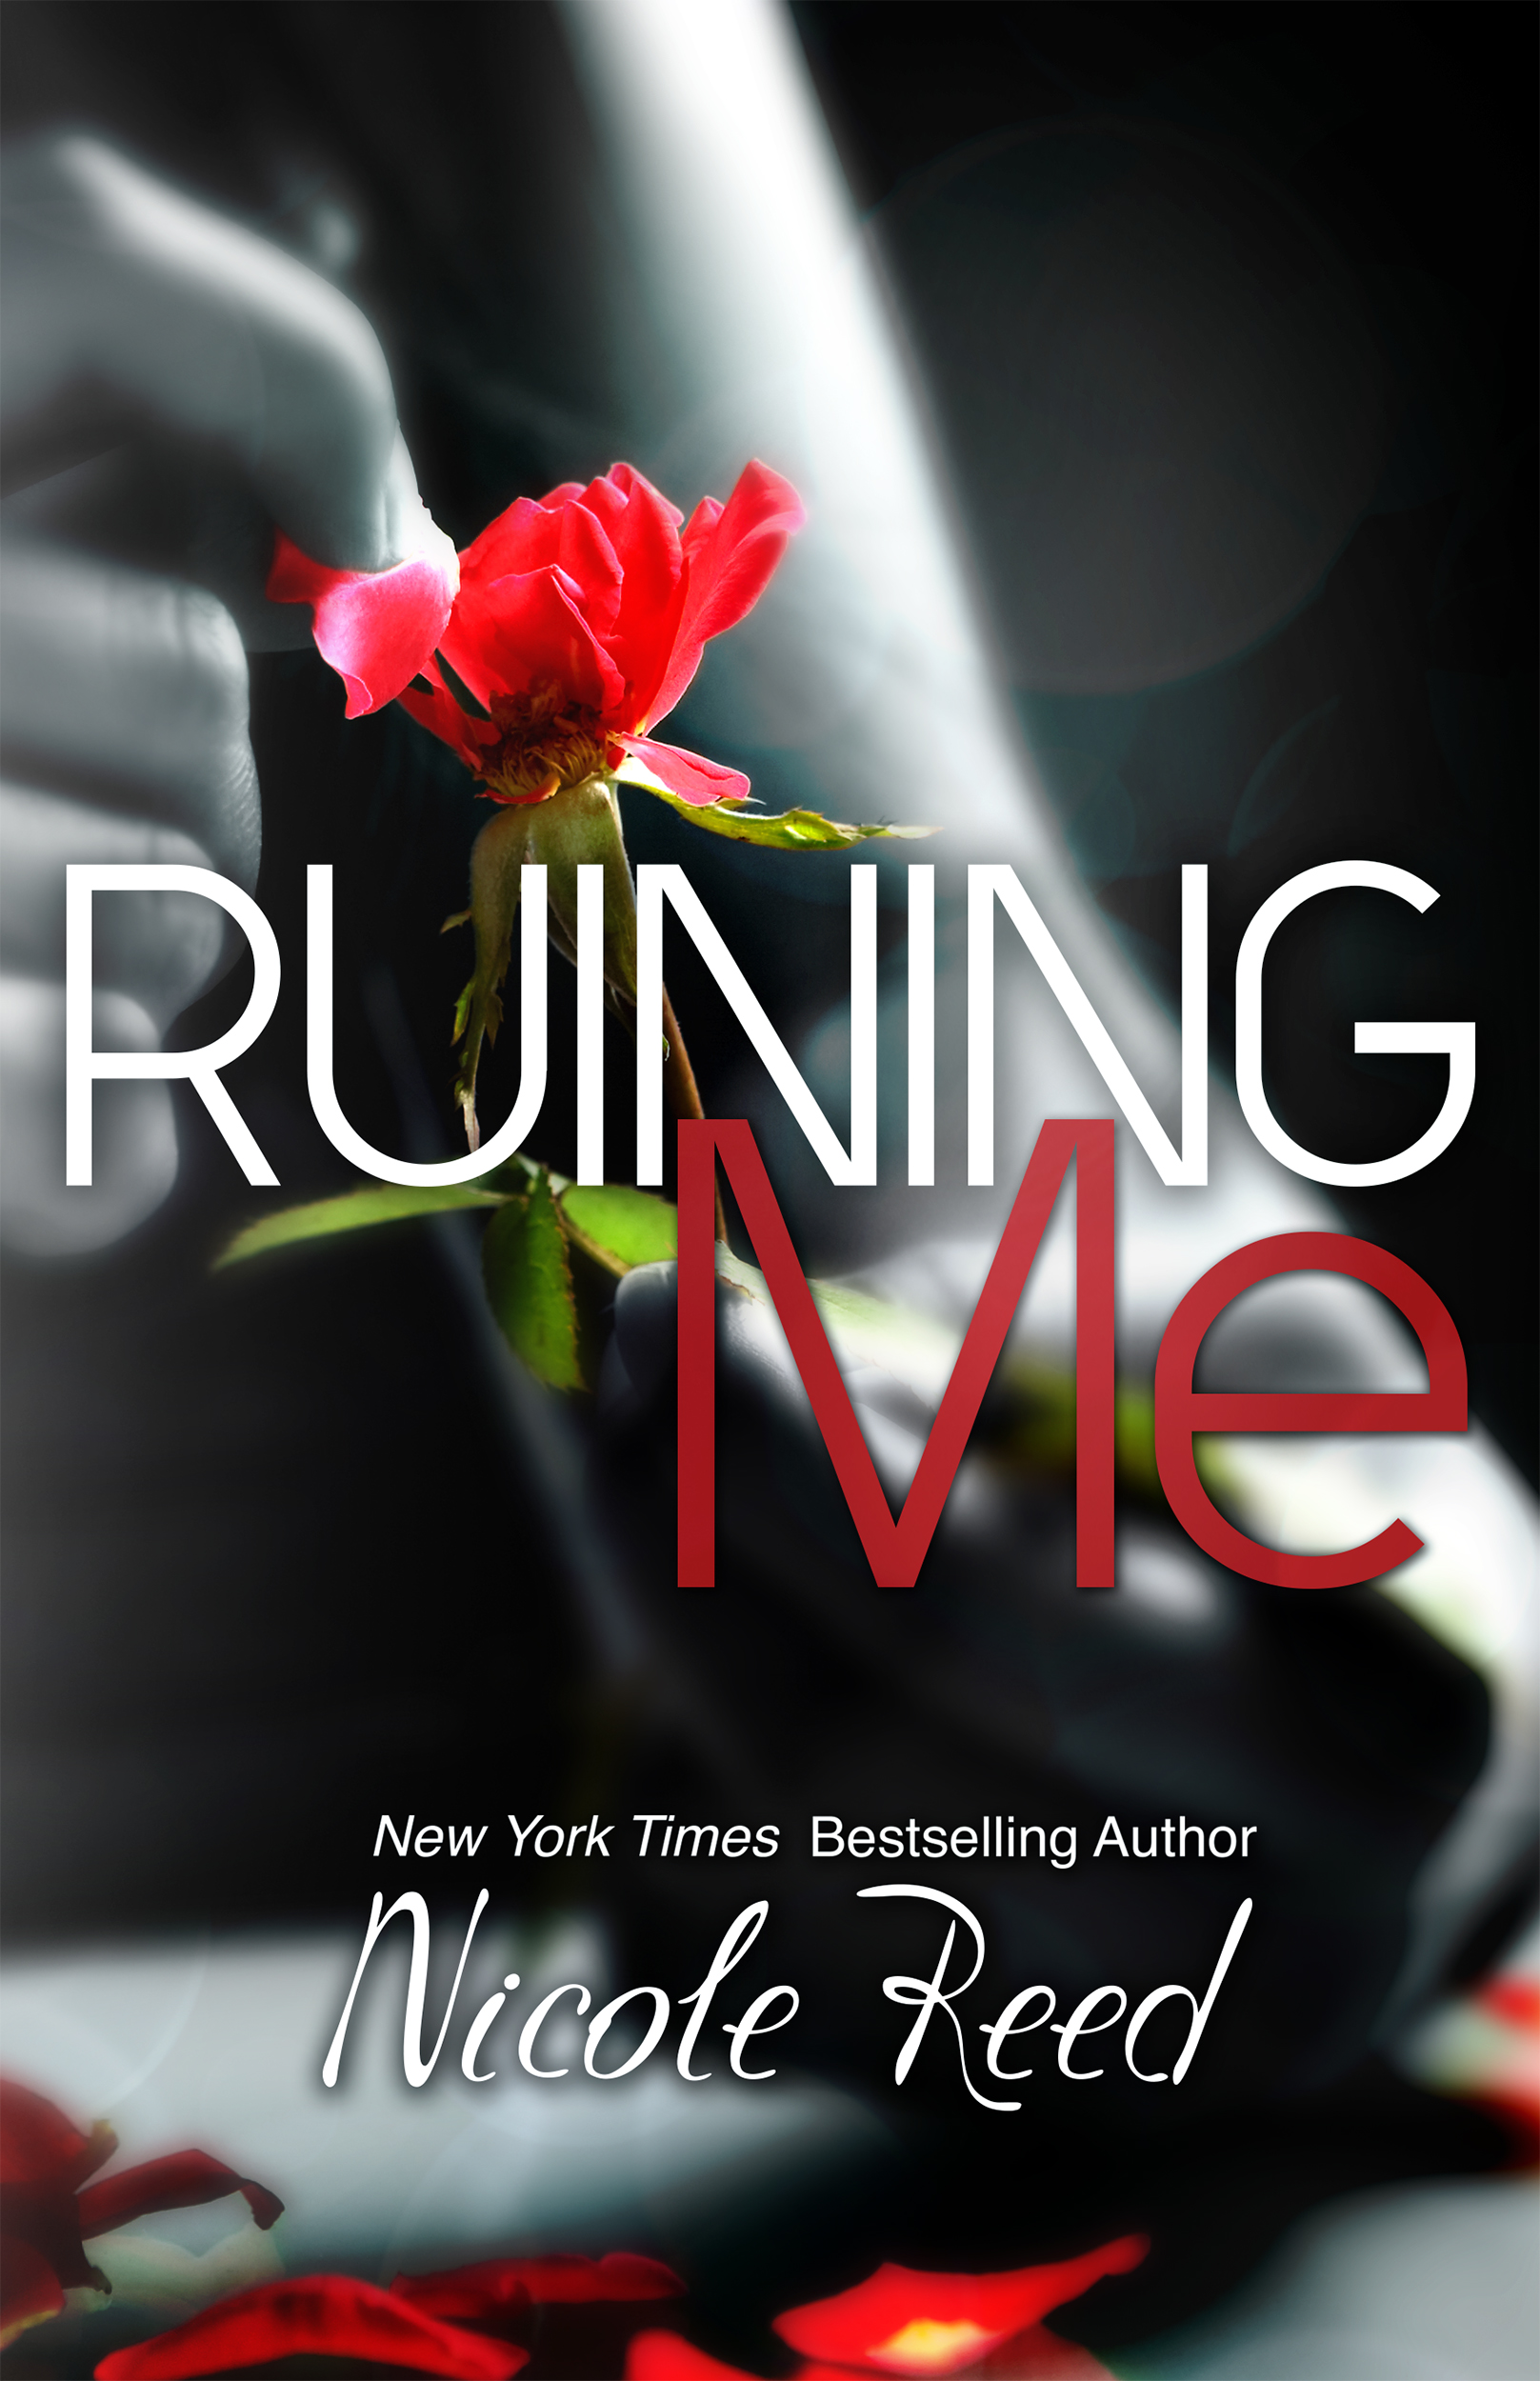 Ruining Me by Nicole Reed